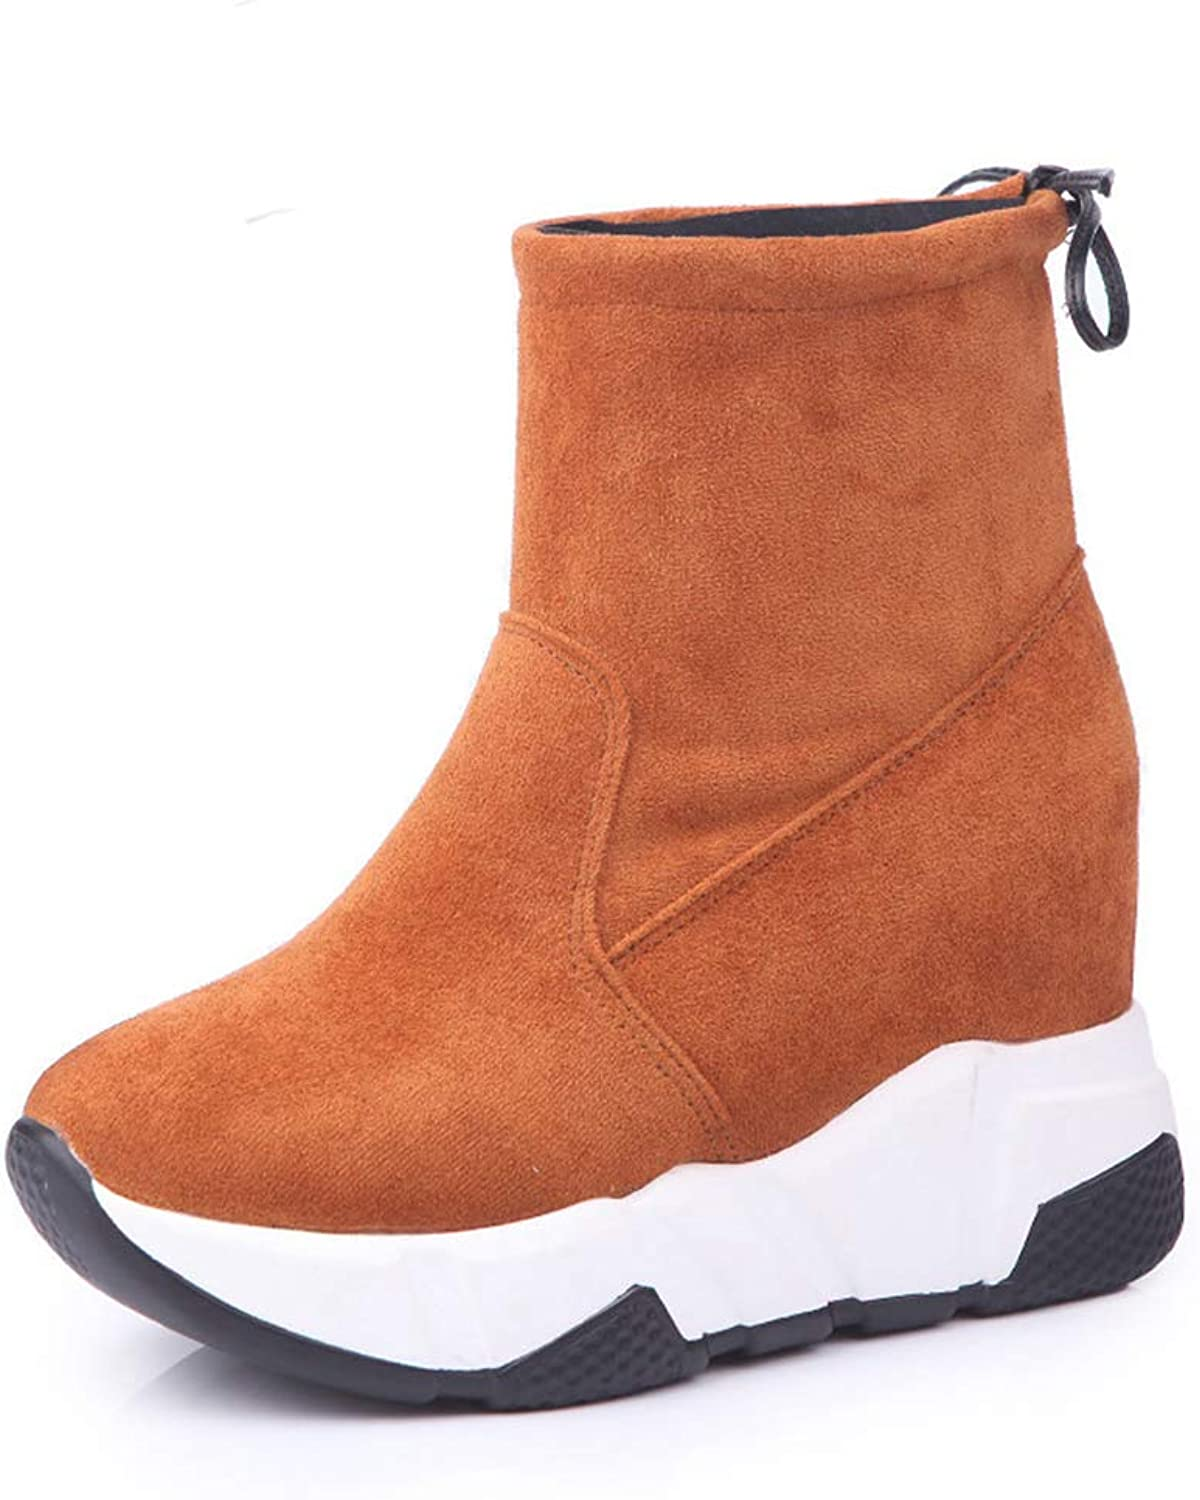 LVYING Womens Suede Warm Winter Ankle Snow Boots Casual Increase Insole Round Toe Plarform Boots